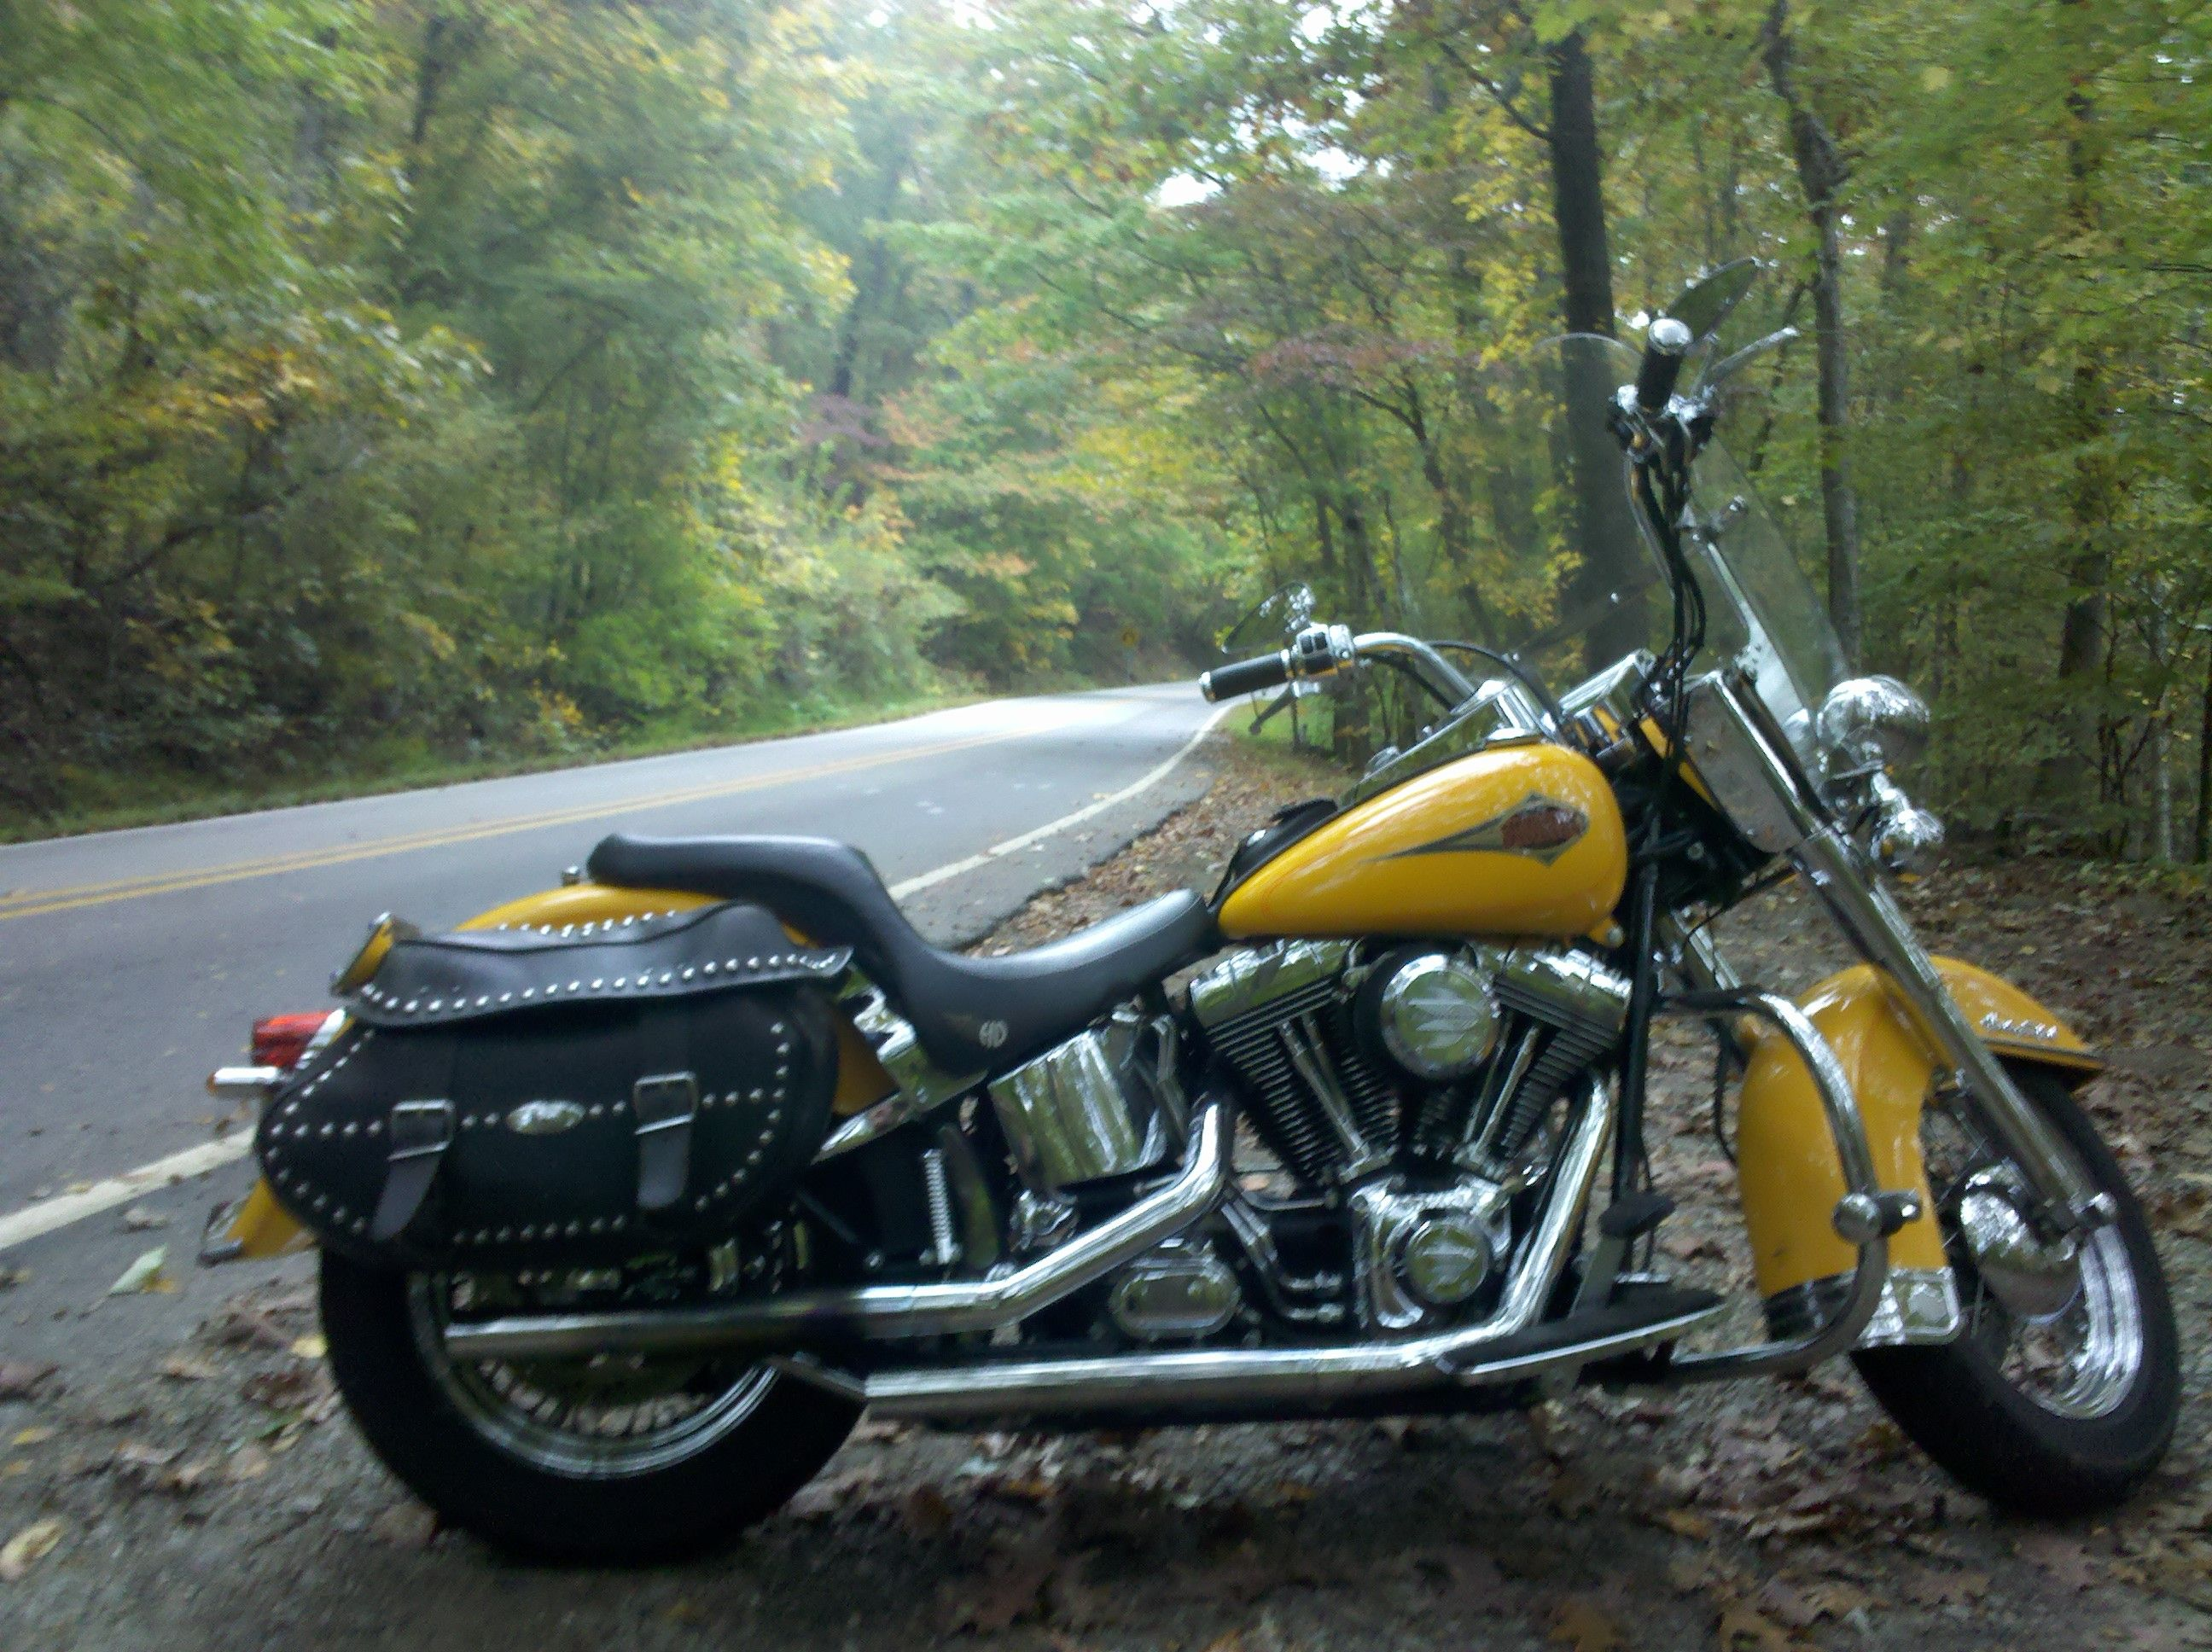 2000 Harley Davidson Heritage Softail Classic Yellow Oh Wait That Is Already In My Garage Silly Me Harley Harley Davidson Bikes Harley Davidson [ 1936 x 2592 Pixel ]